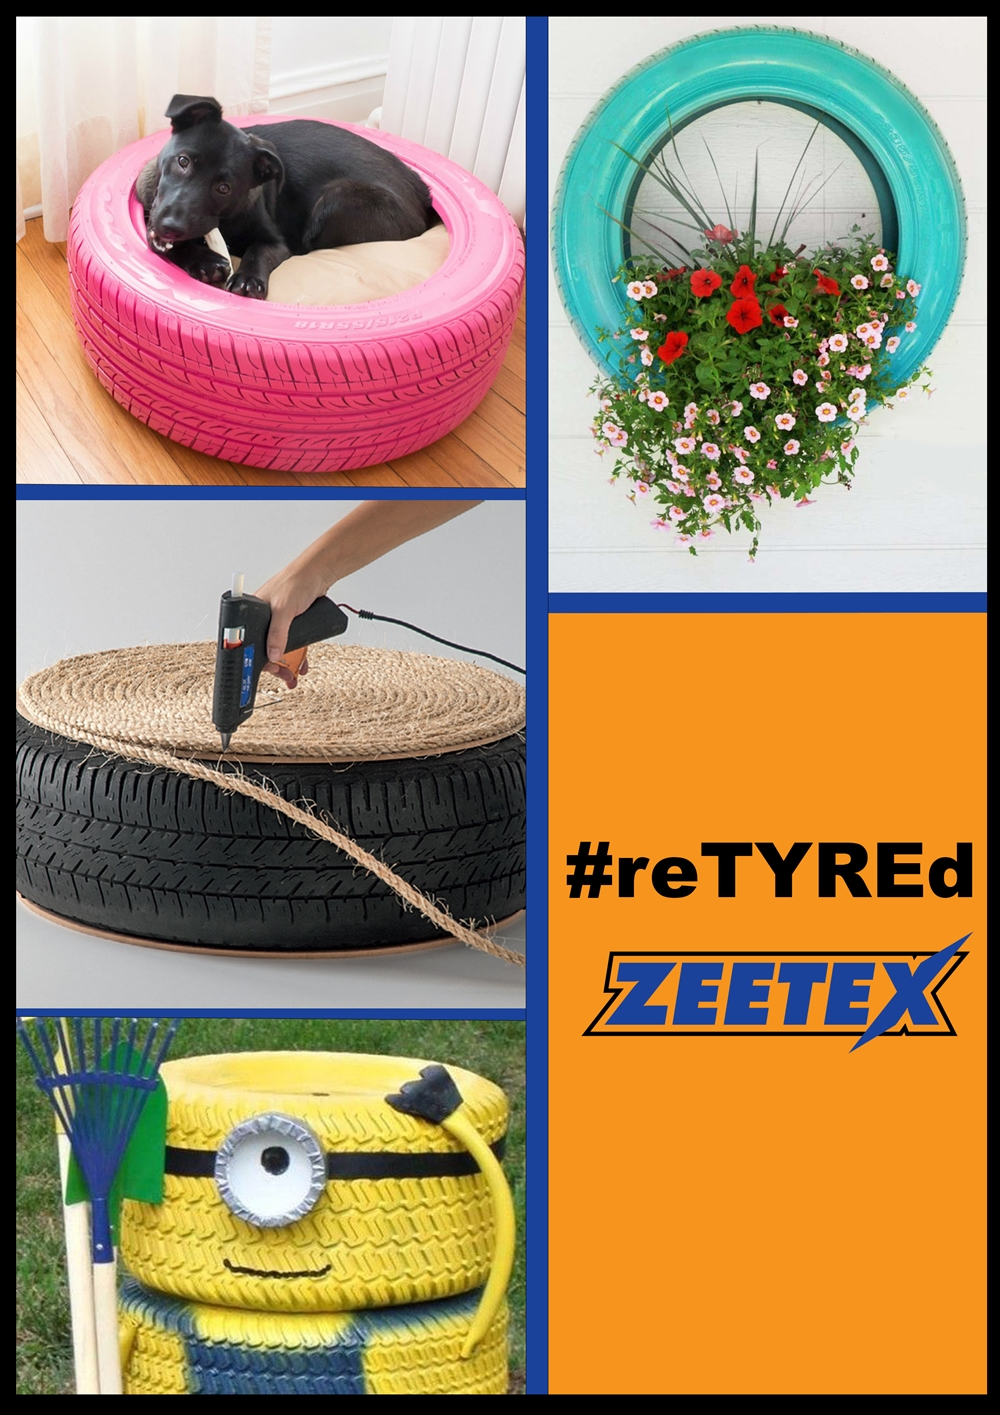 Zeetex Launches #reTYREd campaign